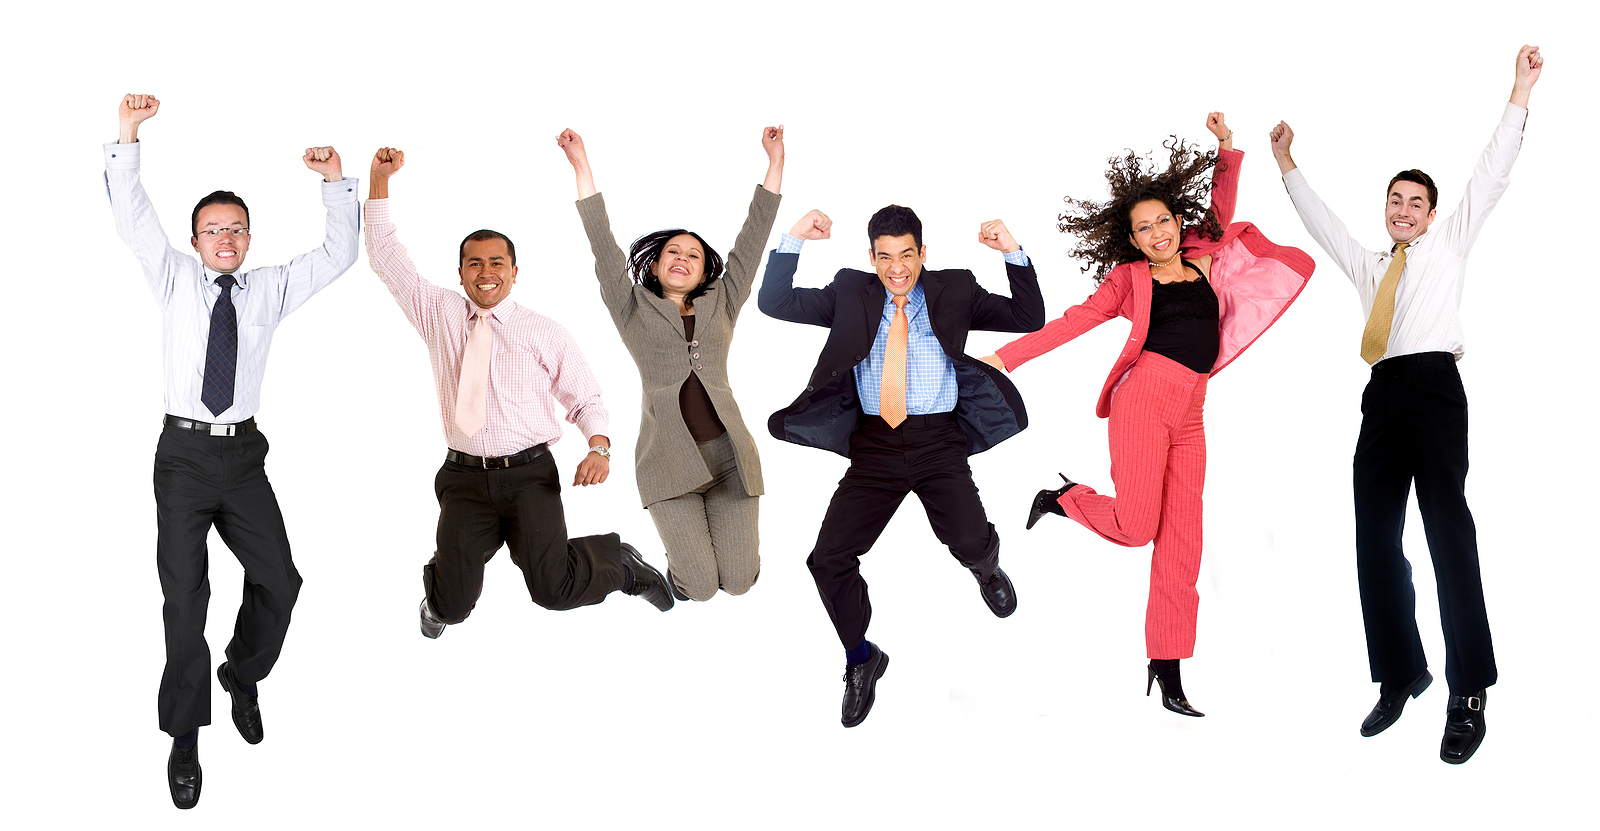 Fun clipart happy employee Cliparts Happy Cliparts Employees Unhappy